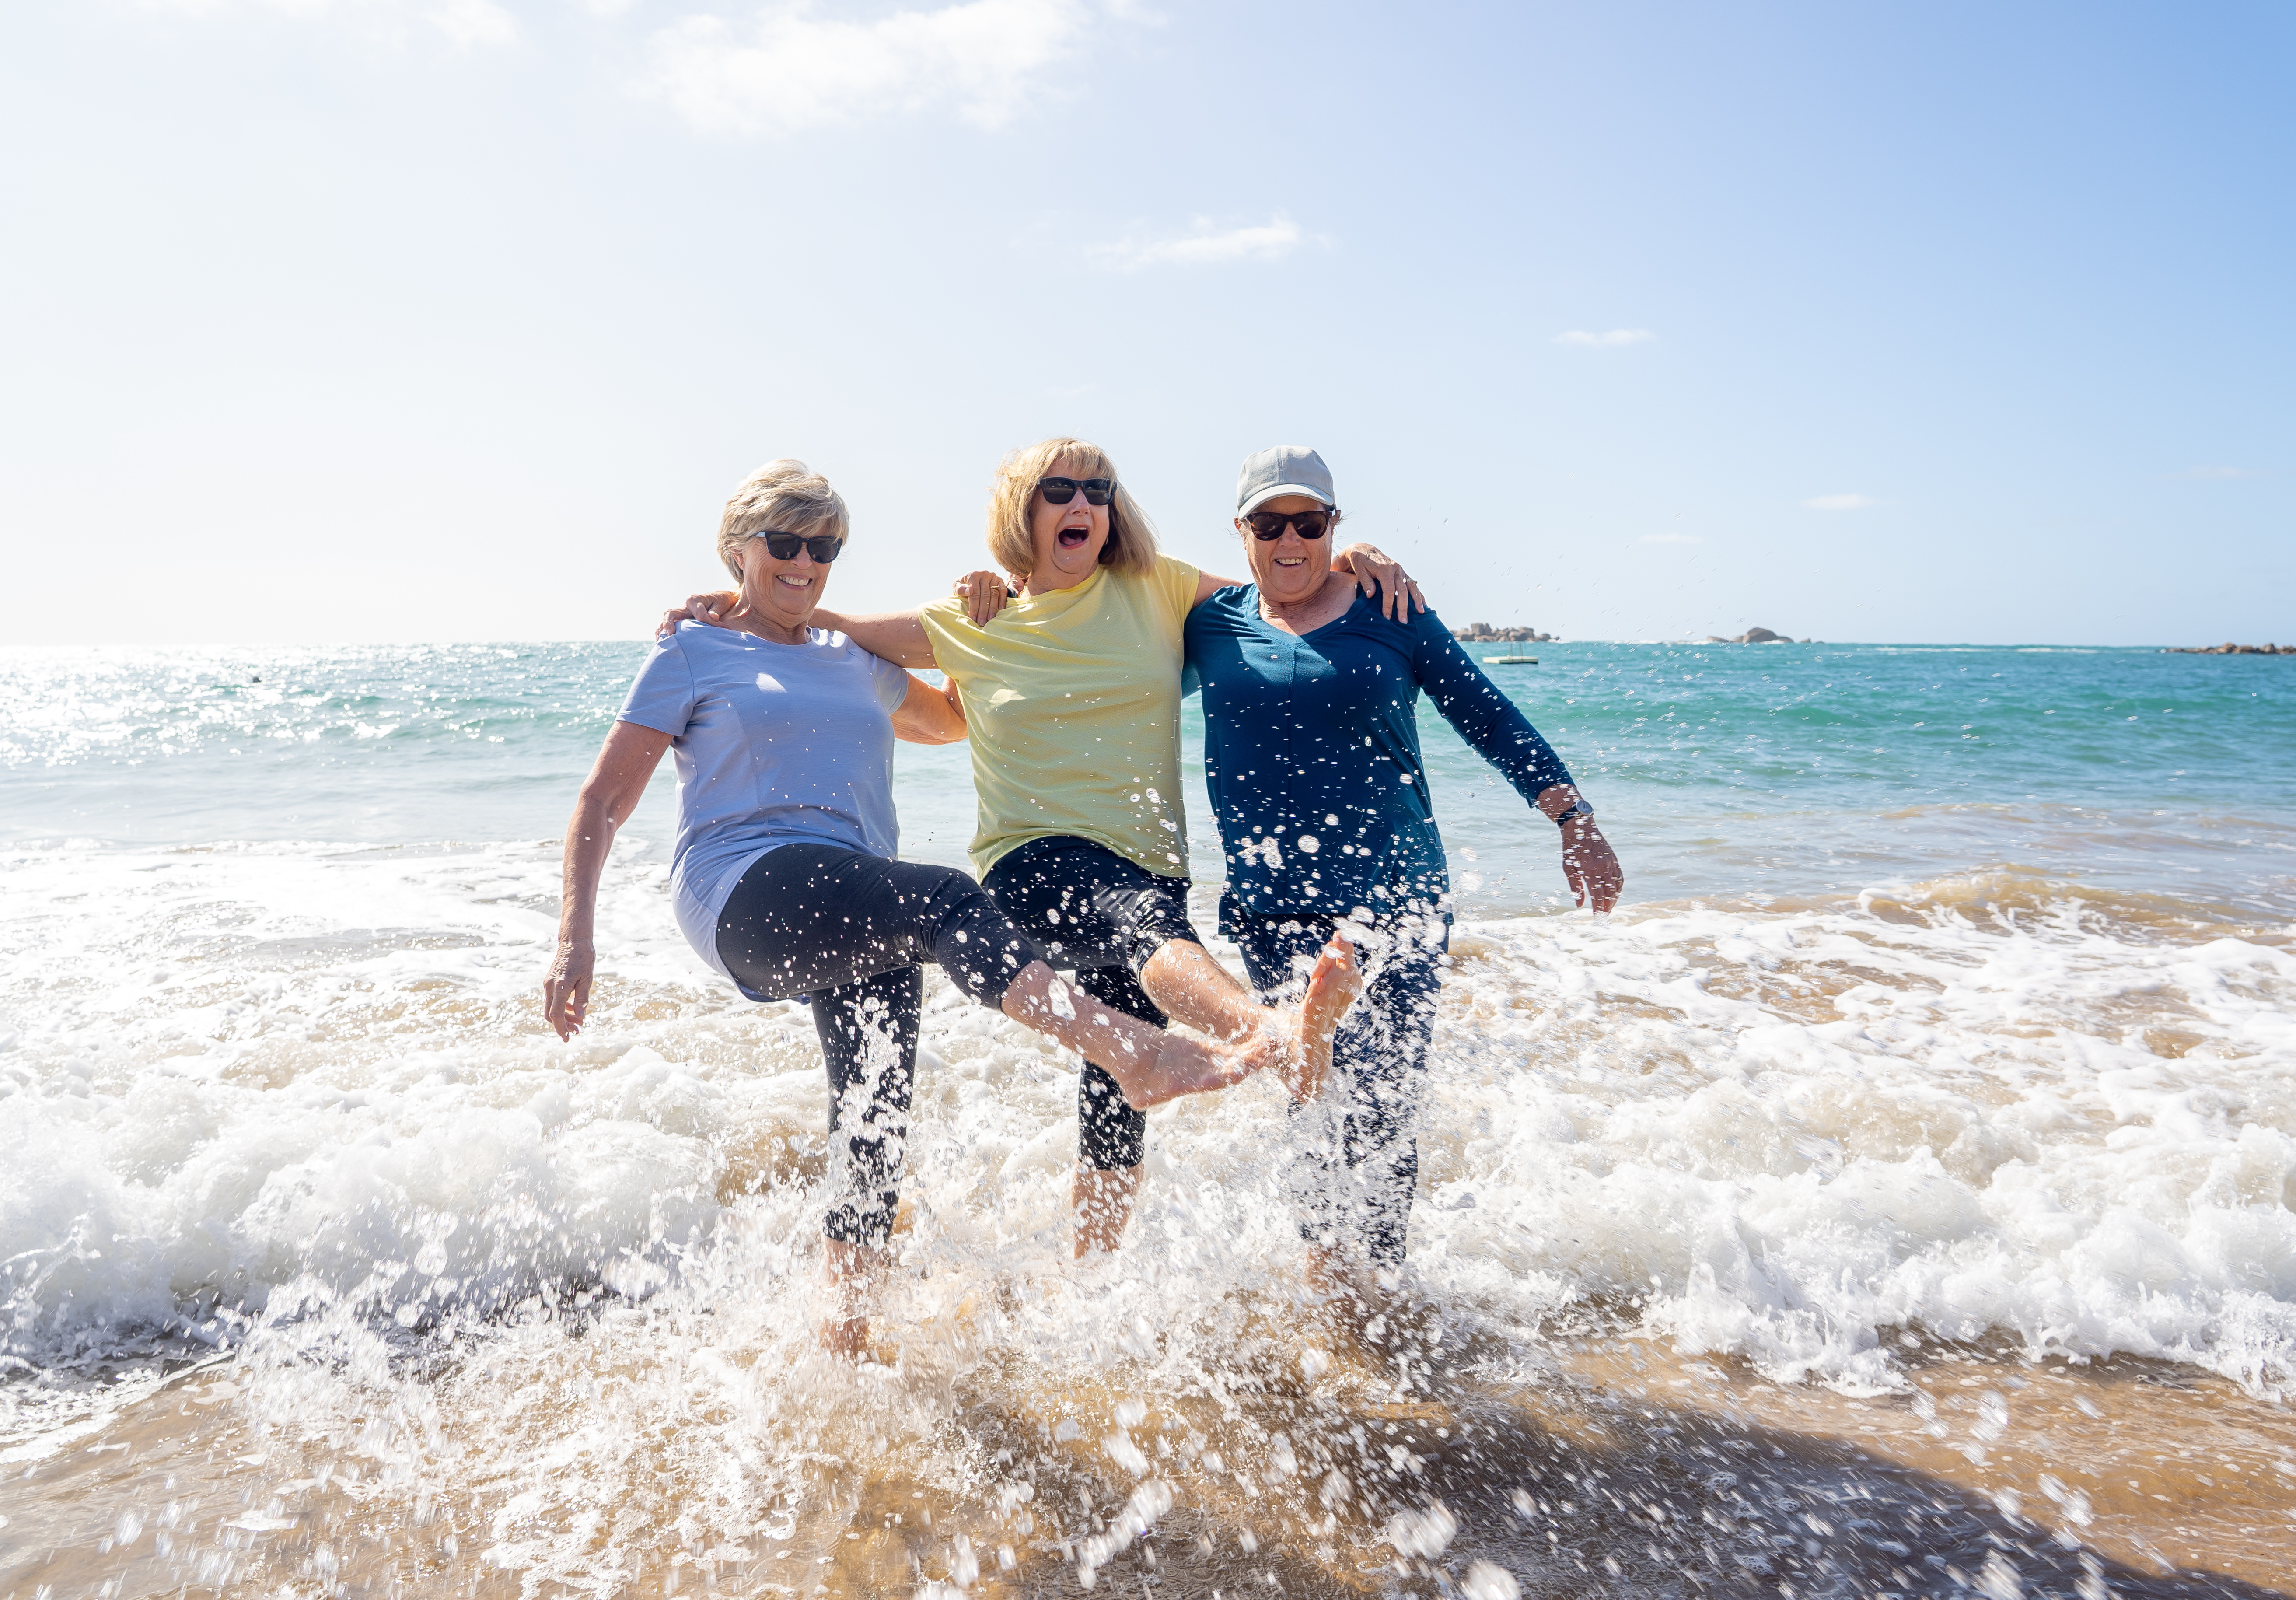 3 midlife women on ocean beach with arms around each other and kicking feet in water